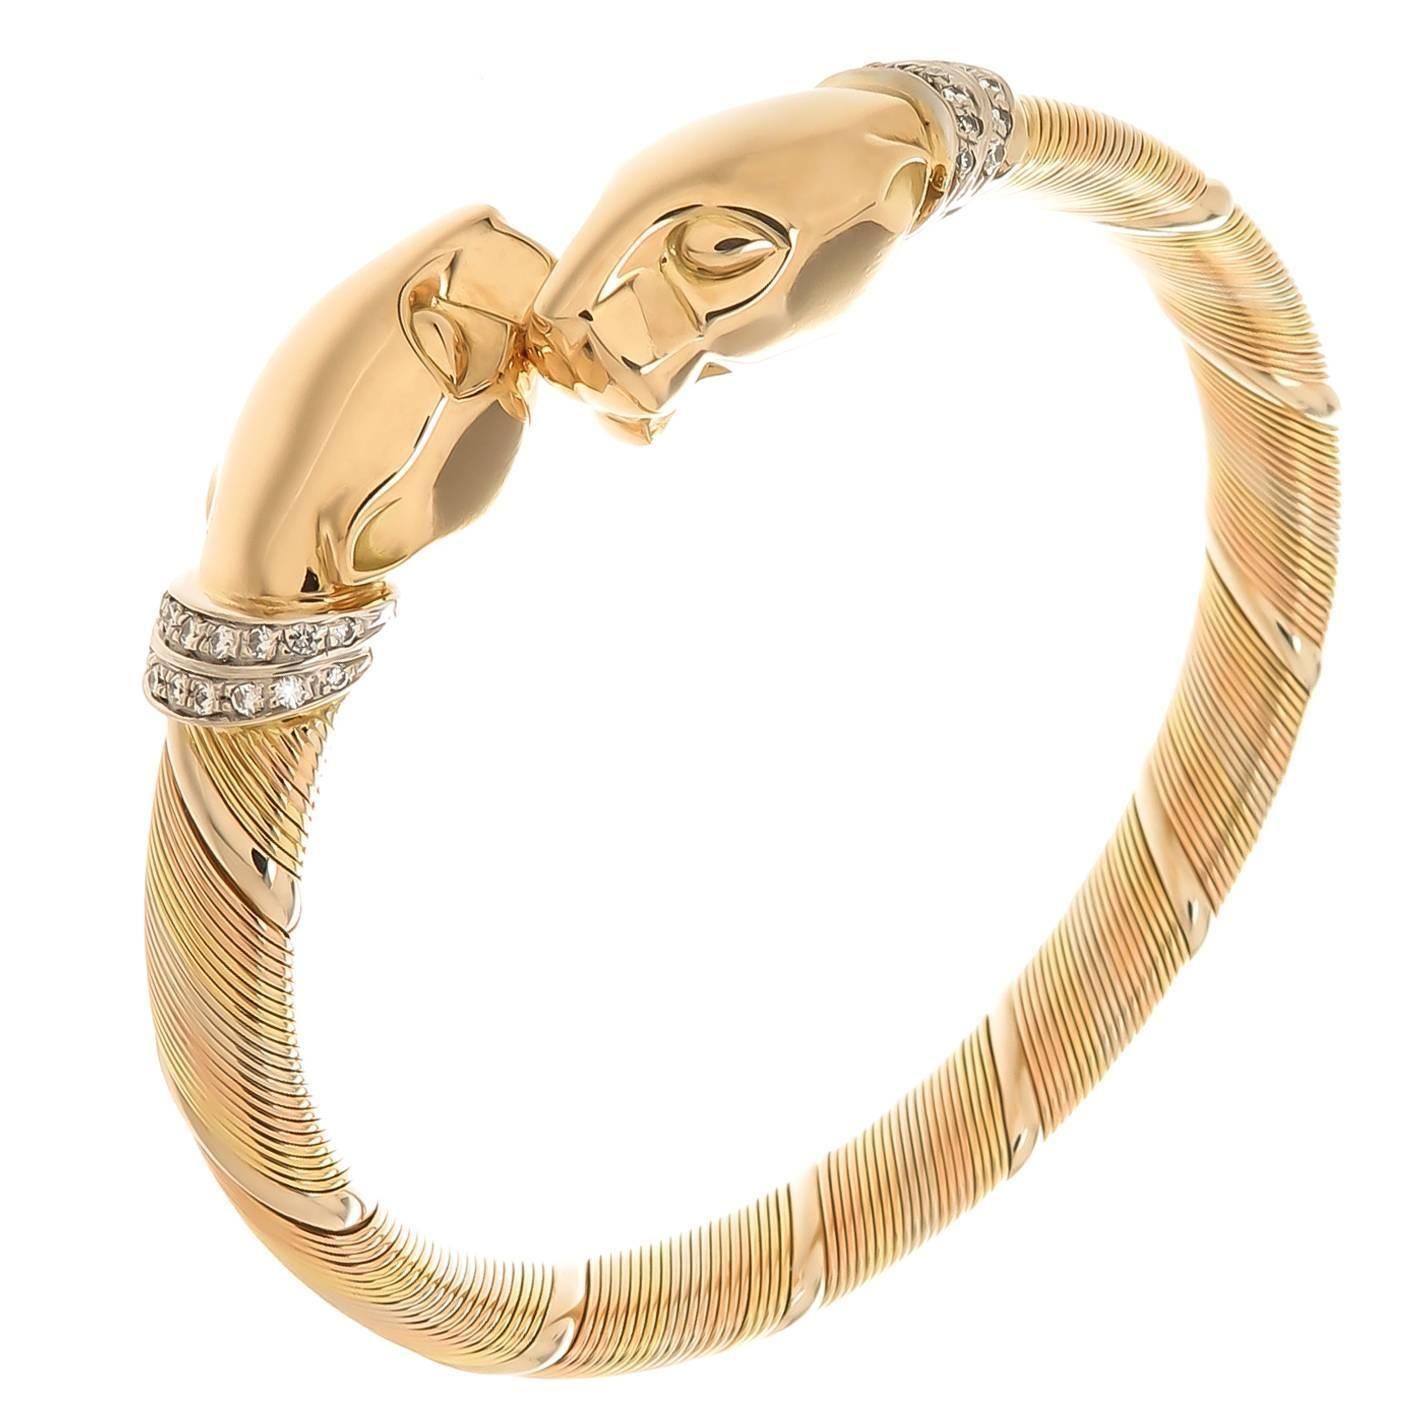 products mini italian panther jewel bracelet sirmione bianco panterina inga gold br enameled